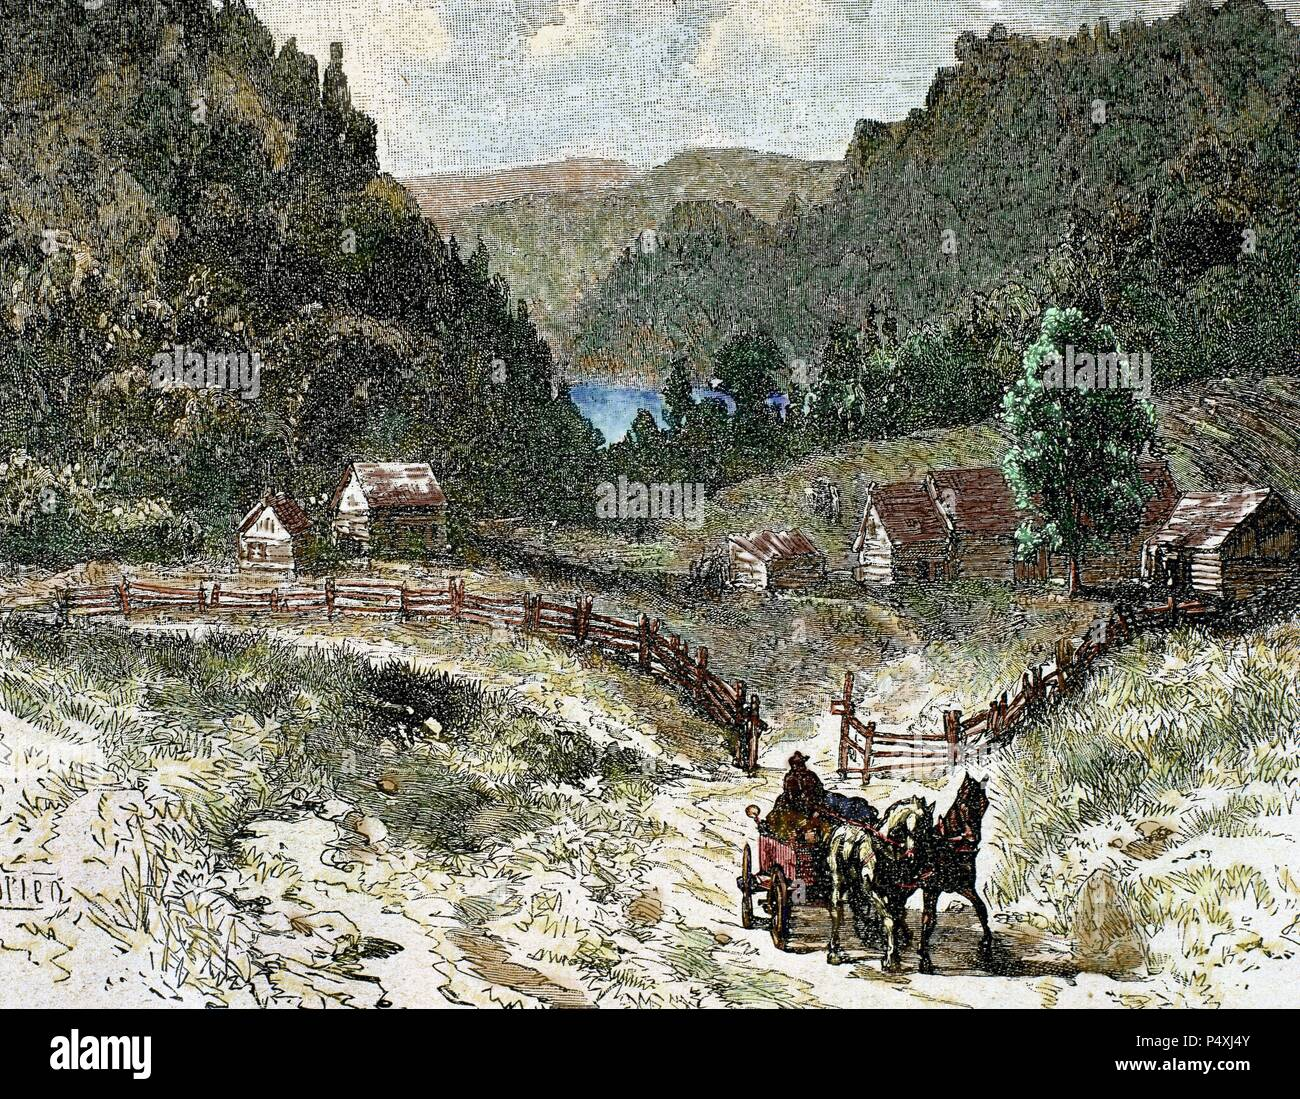 Canadian landscape in the eighteenth century. Nineteenth-century colored engraving. - Stock Image